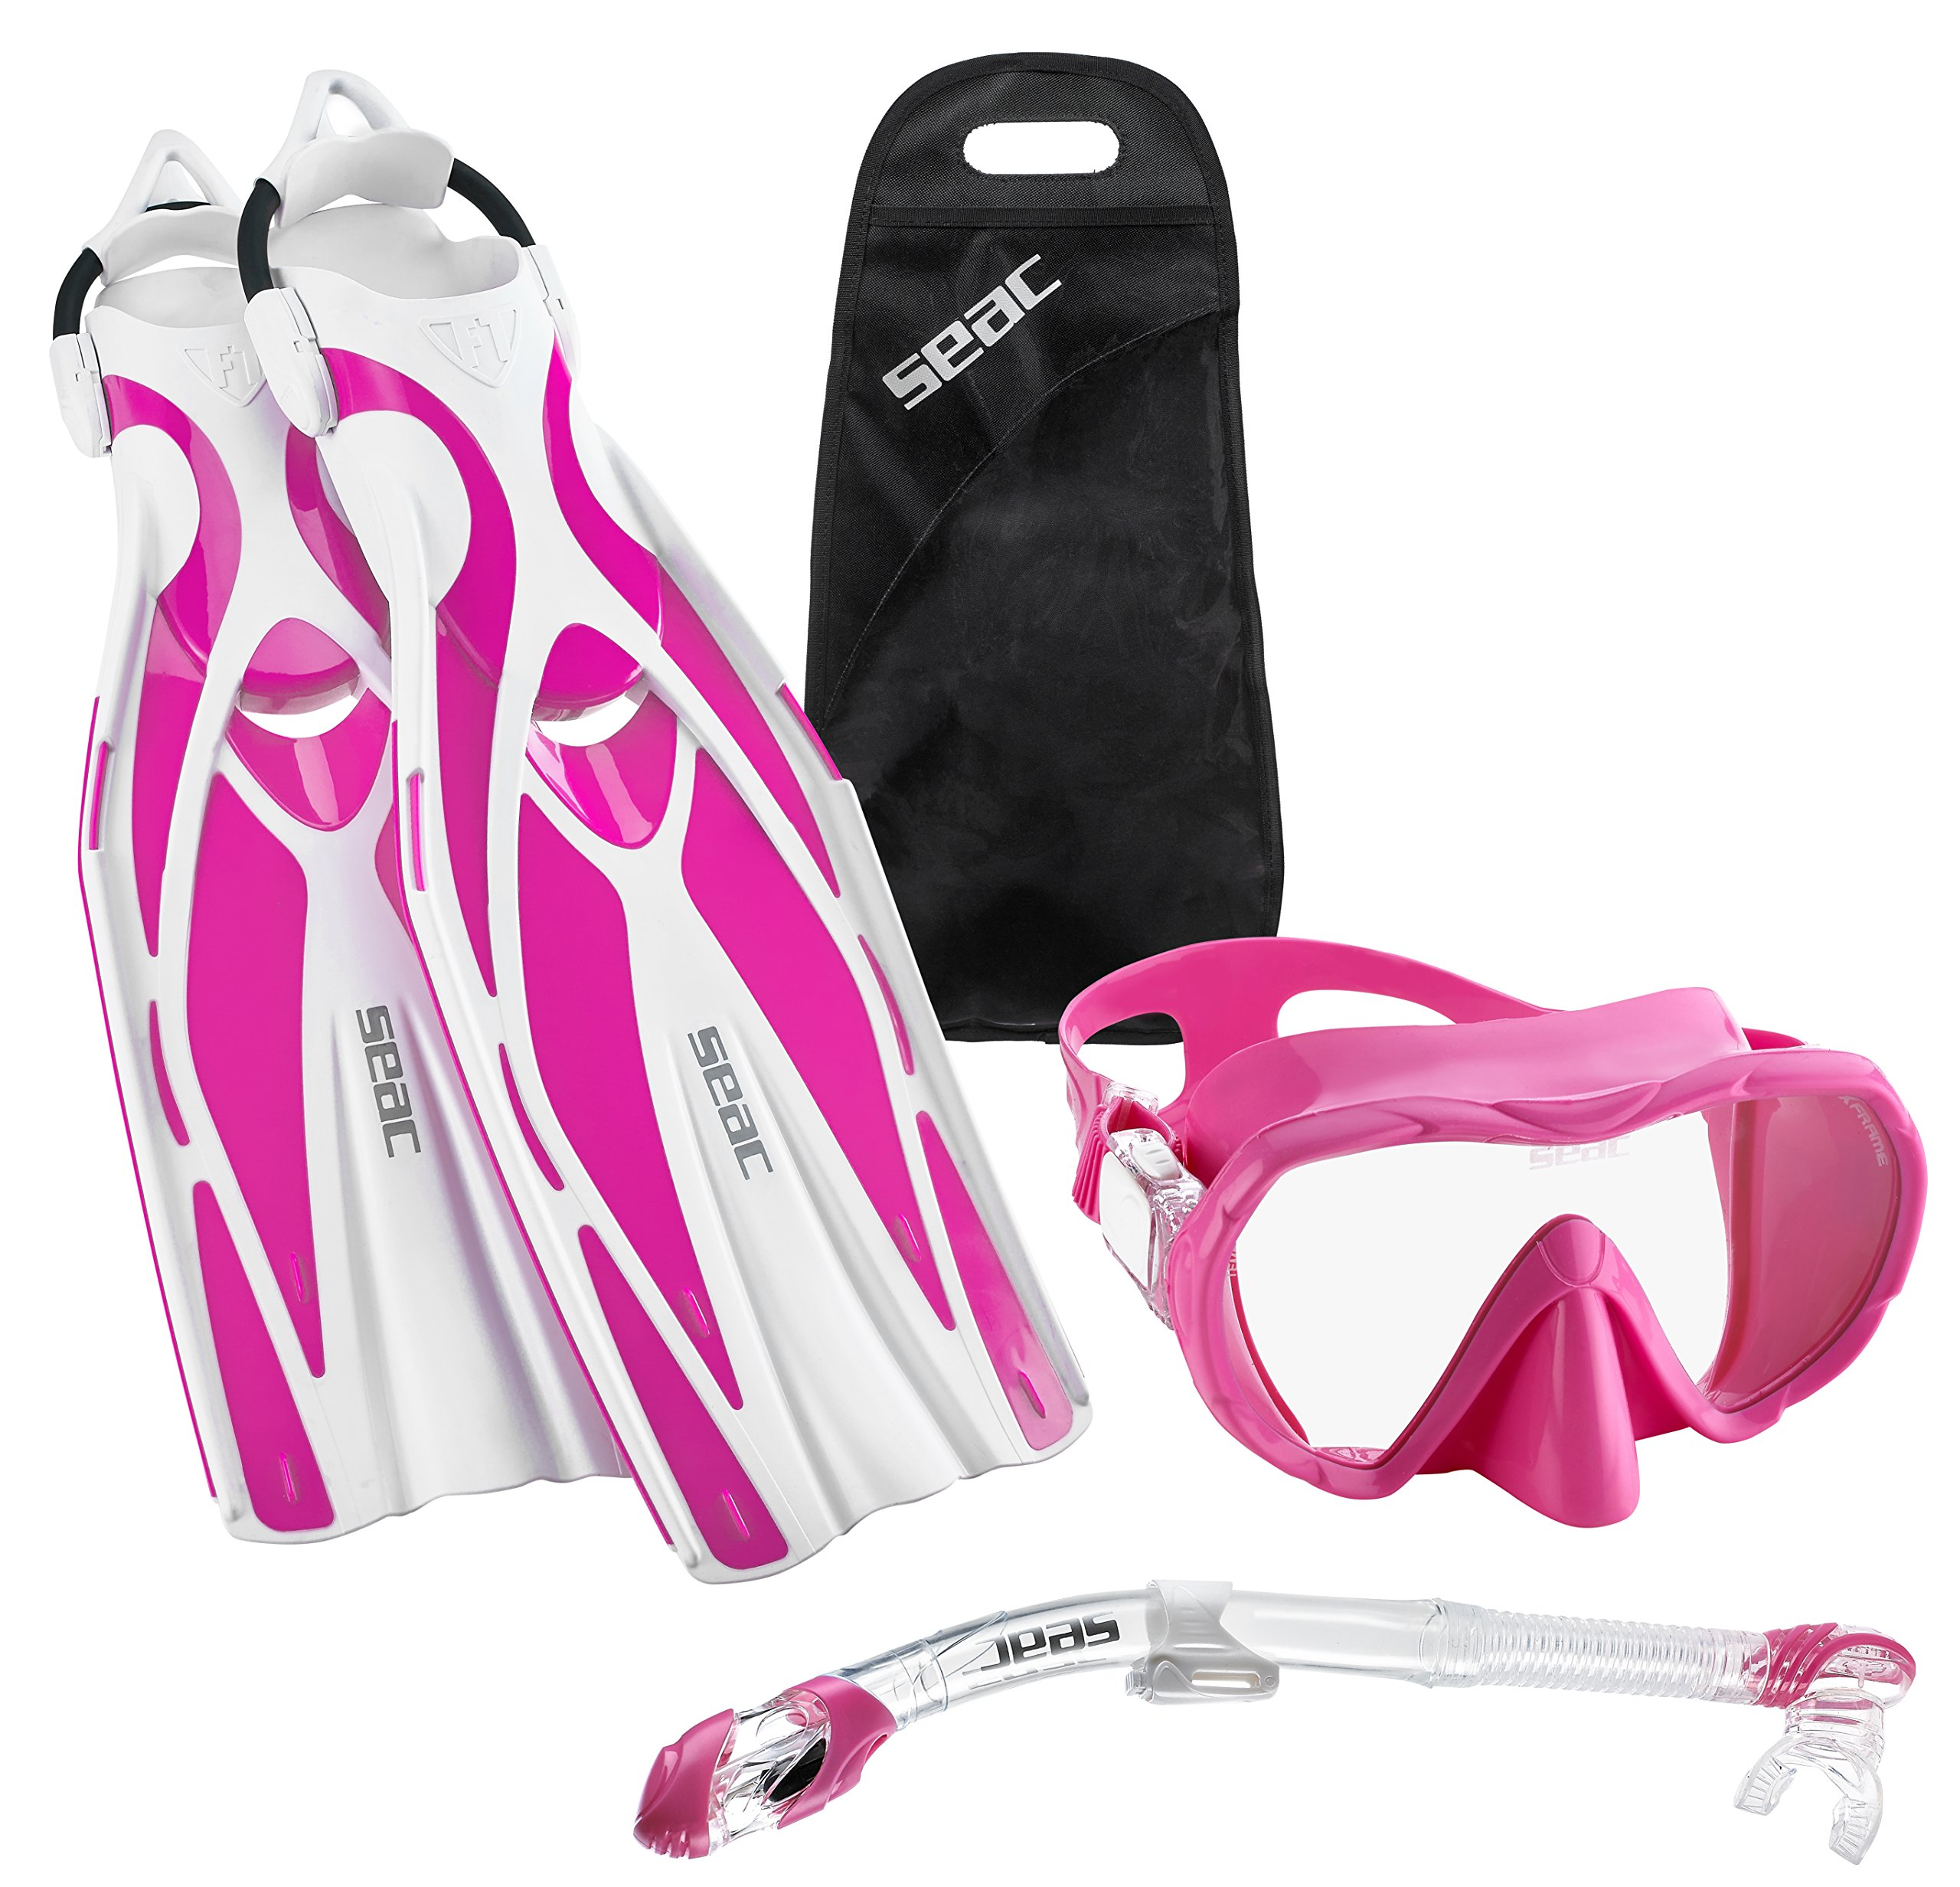 SEAC Frameless Scuba Mask Fin Snorkel Set, Pink, Small/Medium